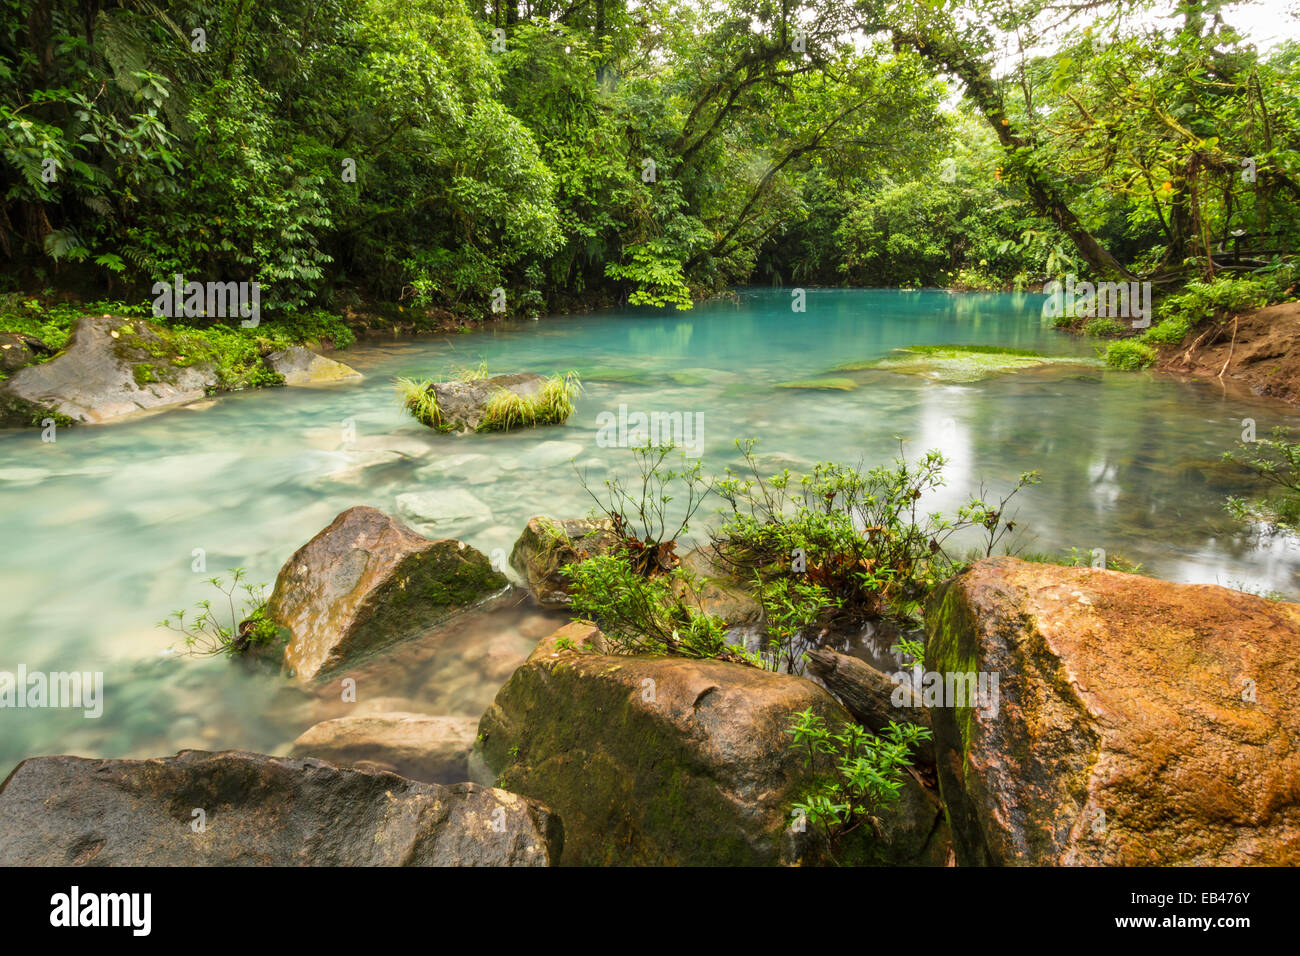 The cerulean blue waters of the 'Blue Lagoon' on the Rio Celeste in Volcan Tenorio National Park, Costa - Stock Image